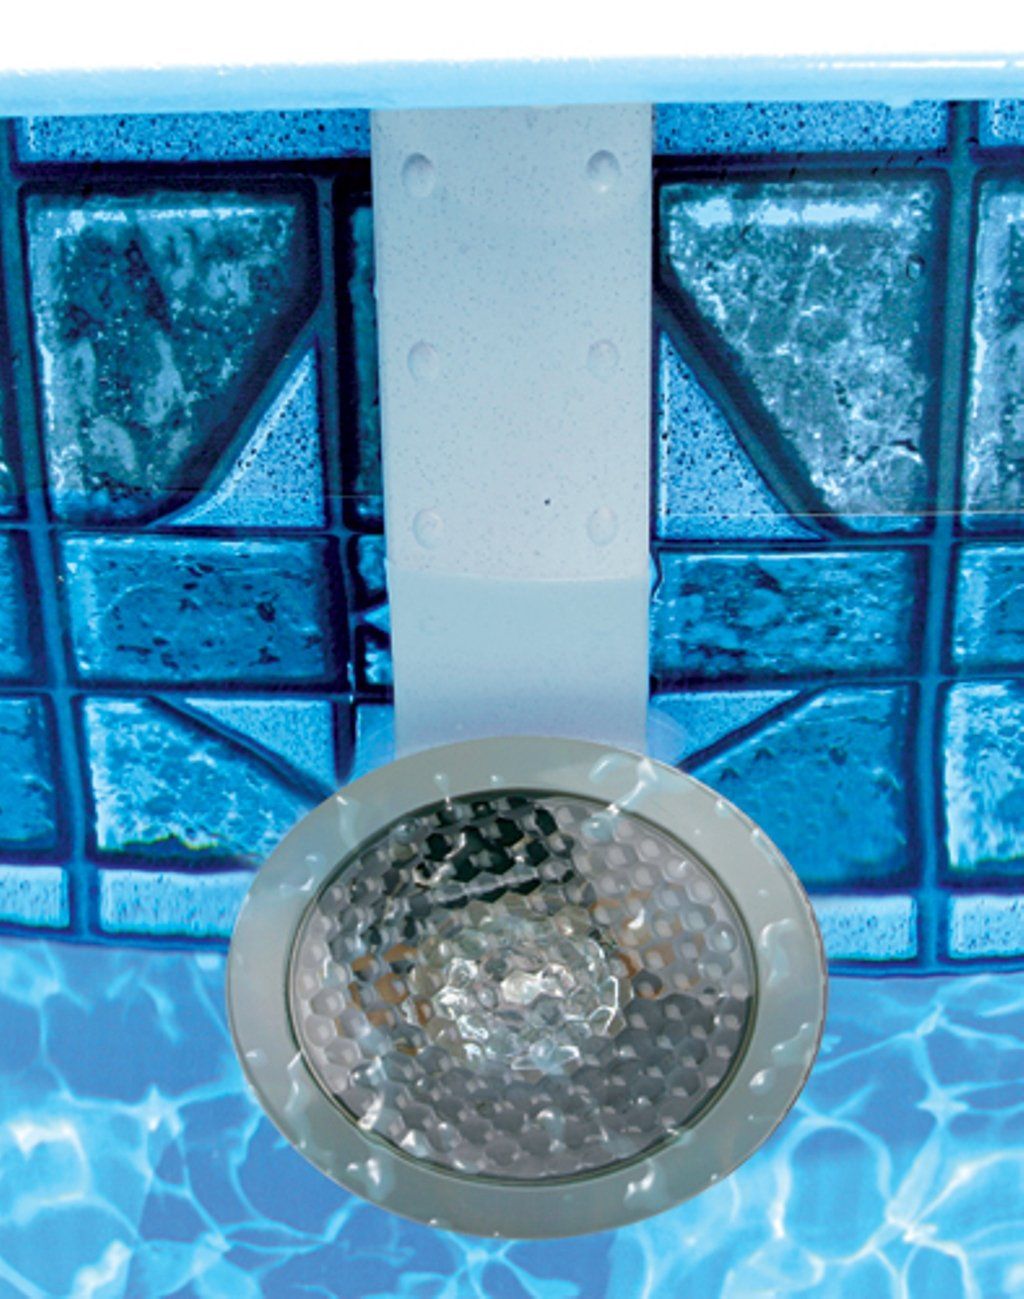 Top 5 Best Underwater Lights for Above Ground Pools Reviews in 2020 5